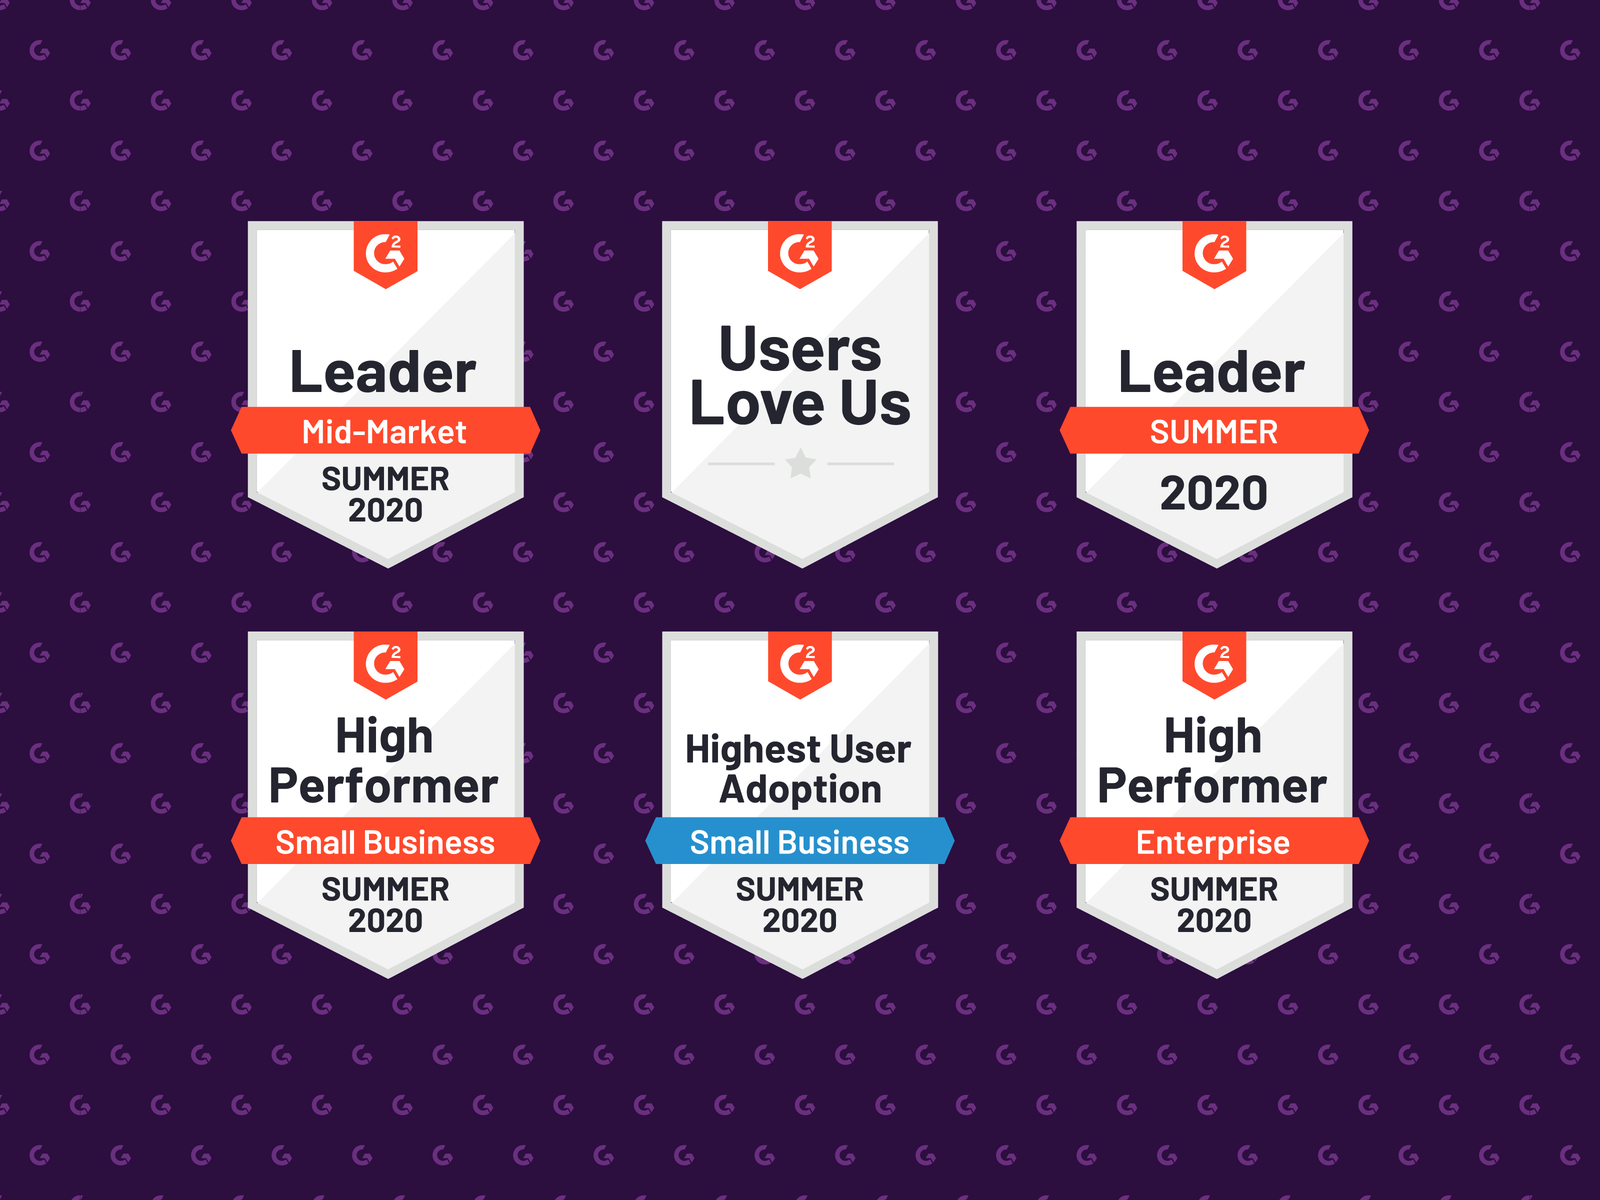 Kentico Xperience is recognized as a leader in the G2 Summer 2020 report